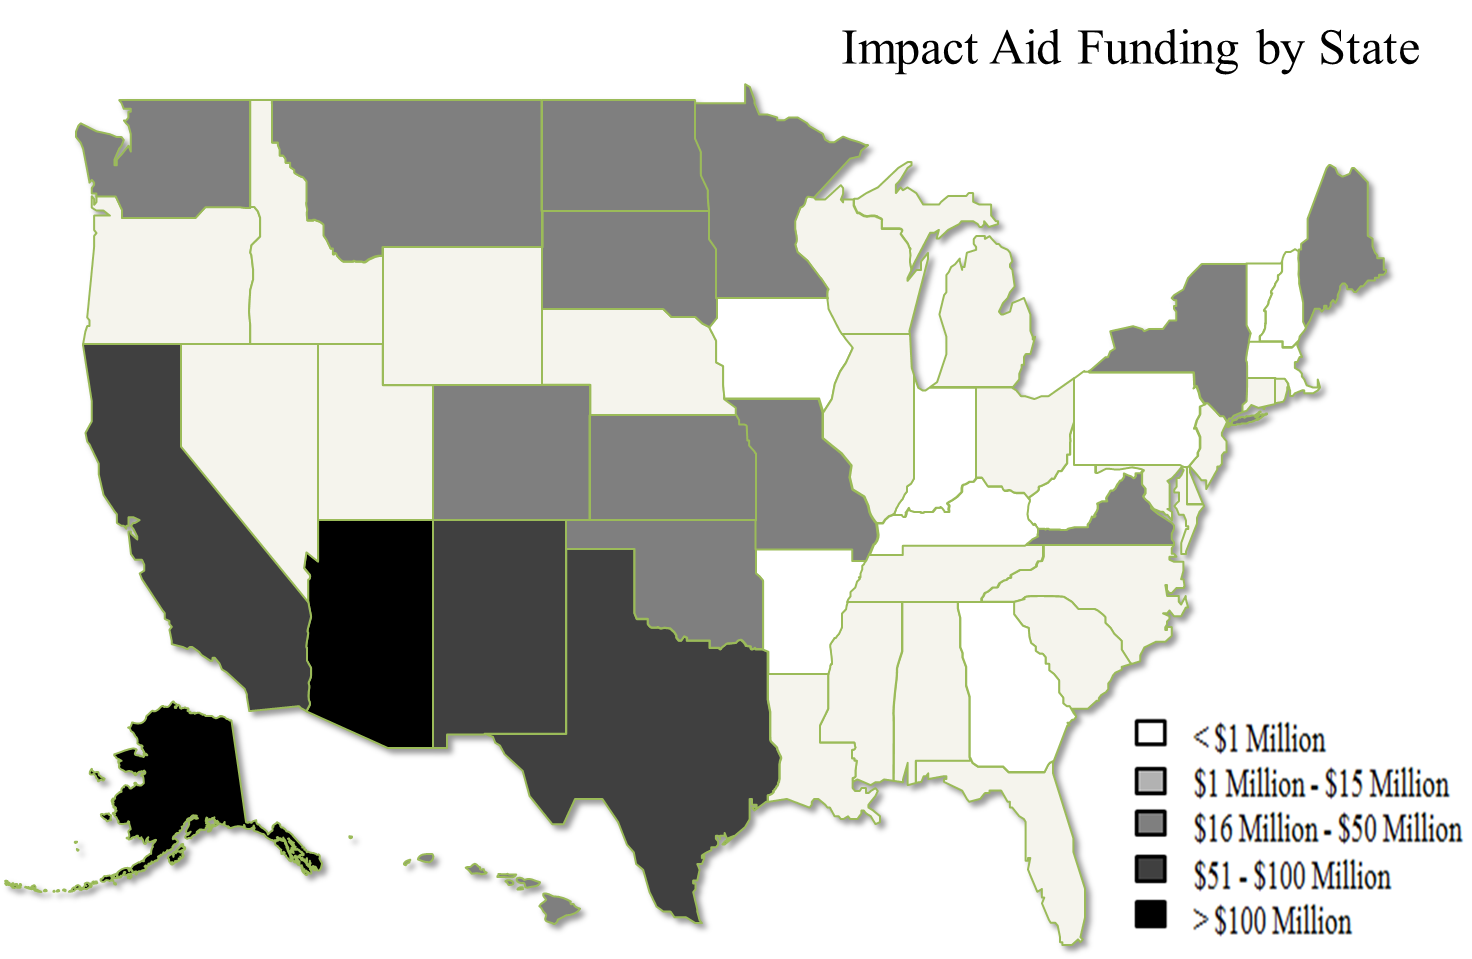 U.S. Map illustrating Impact Aid funding by state